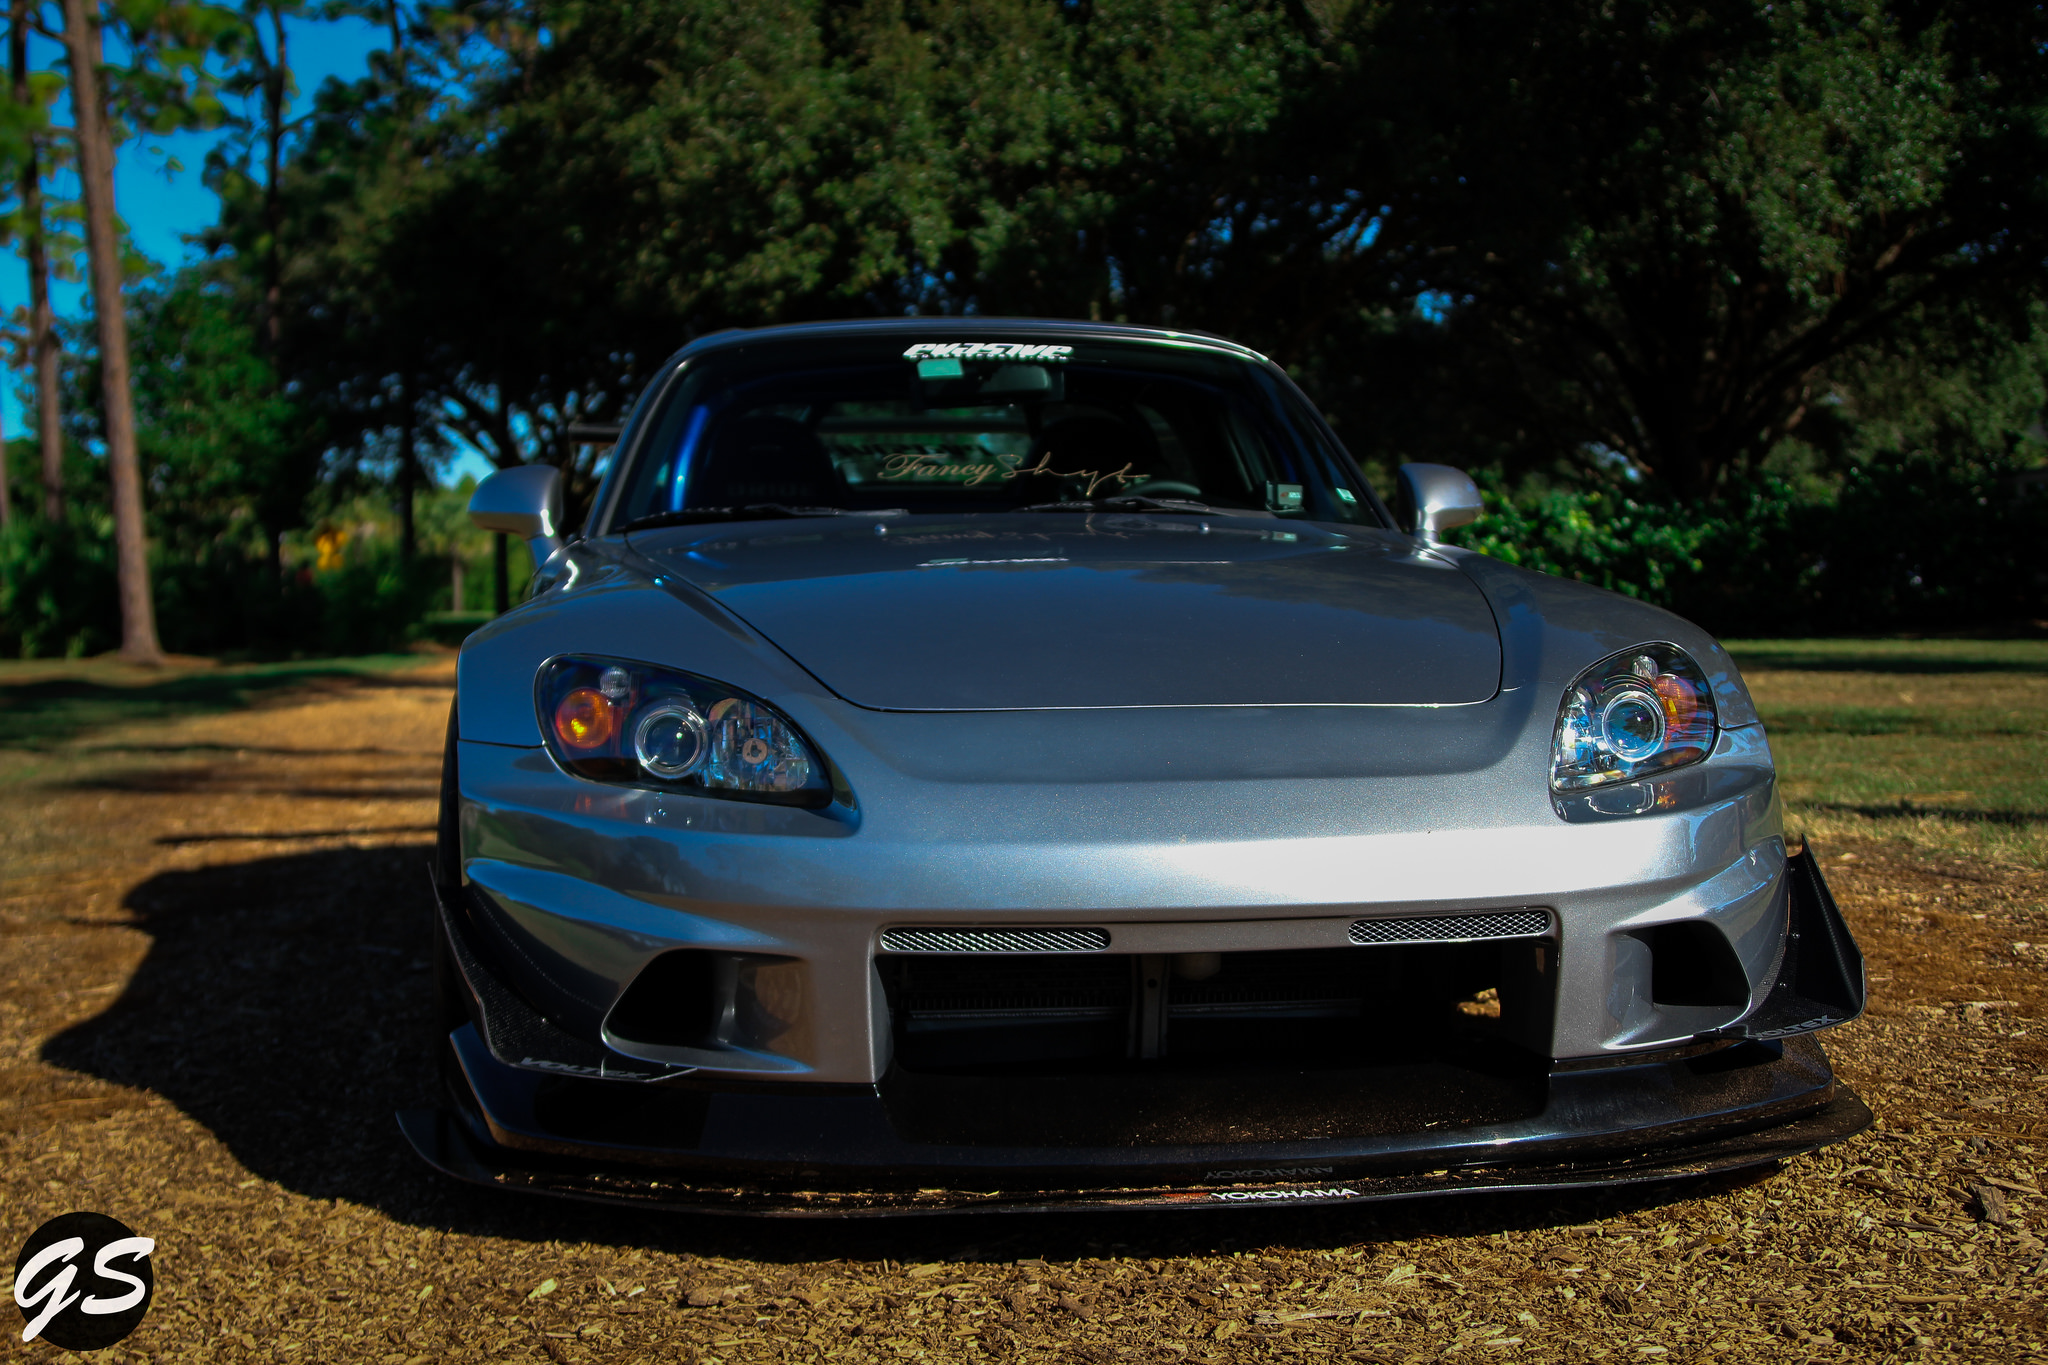 MPPSOCIETY profit_child Voltex Honda S2000 06